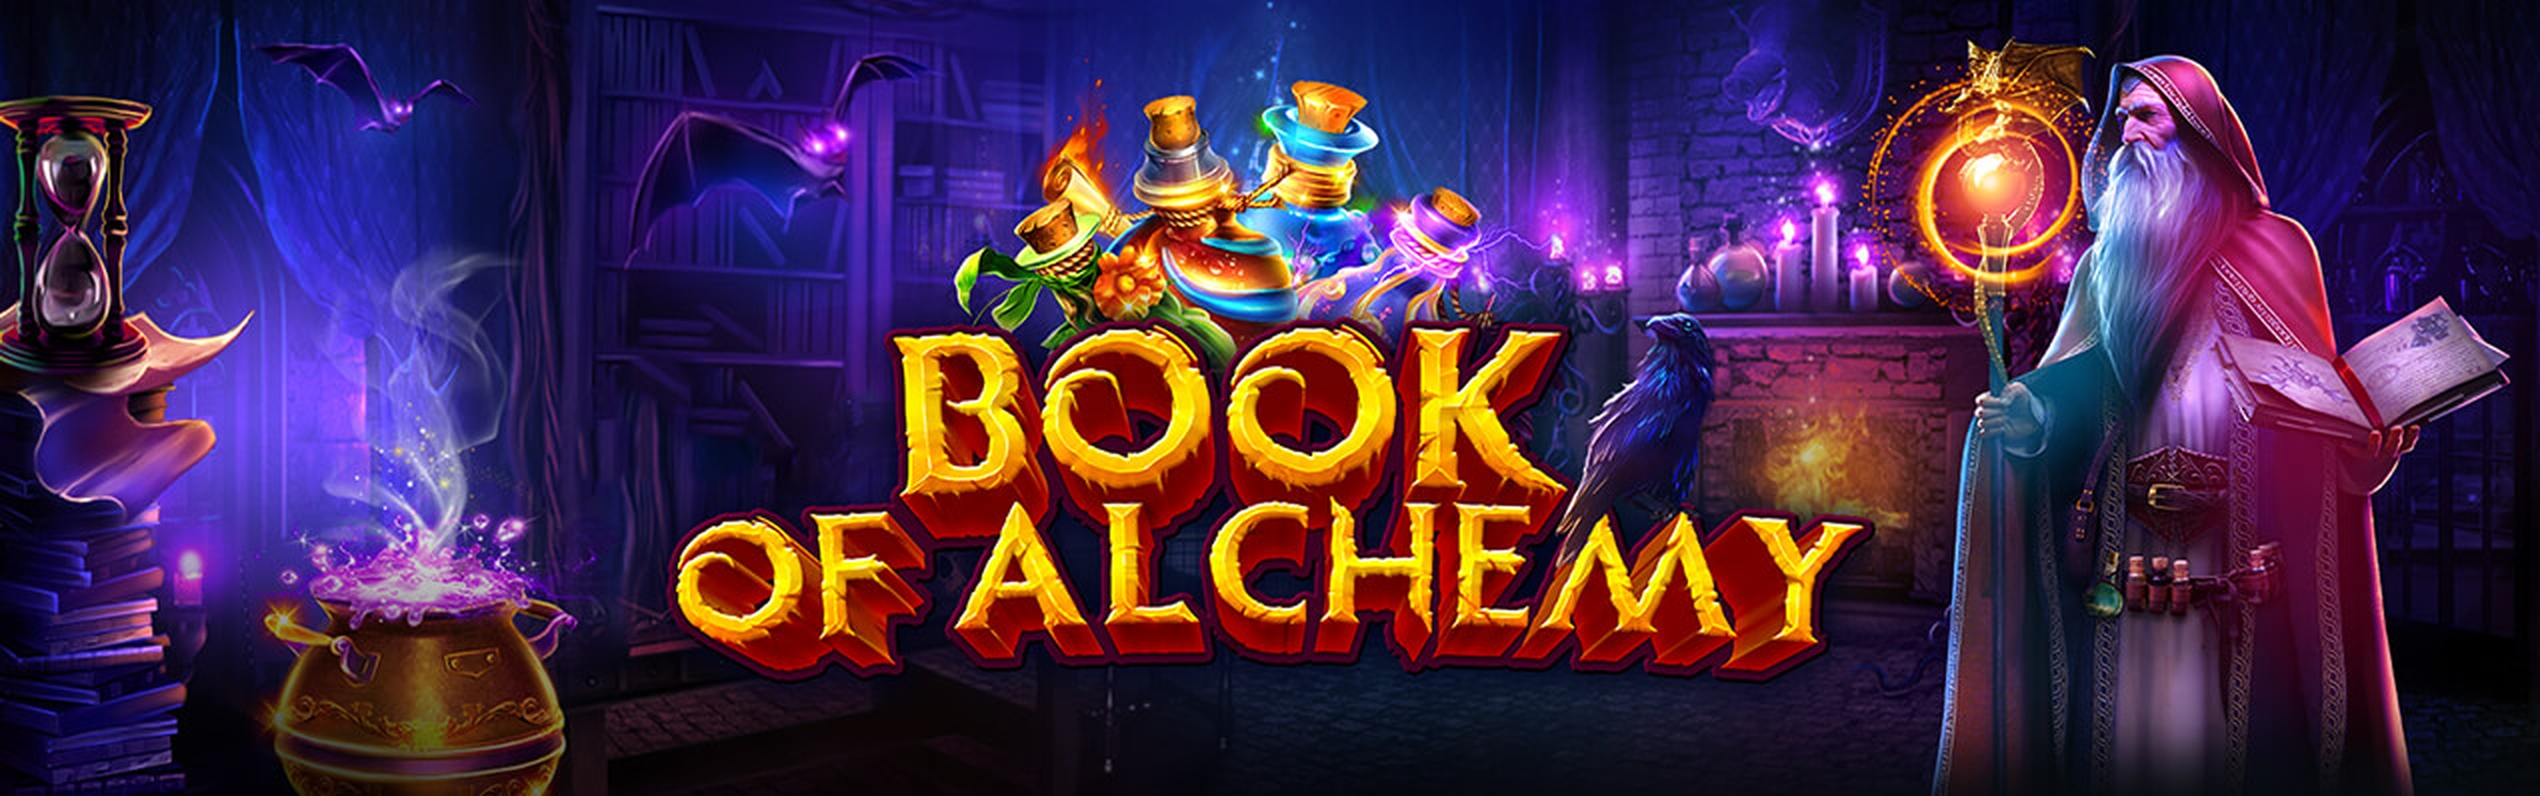 The Book of Alchemy Online Slot Demo Game by GameArt